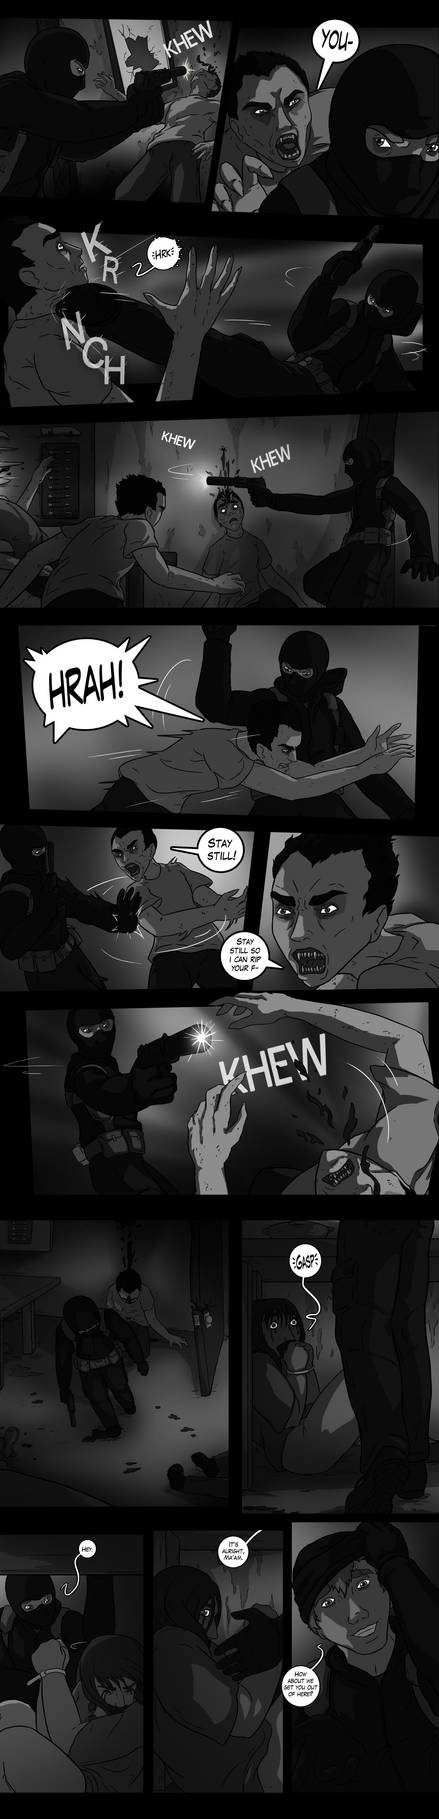 Legio Arcana-Chapter 5: Page 4-6 by bluehorse-rmd